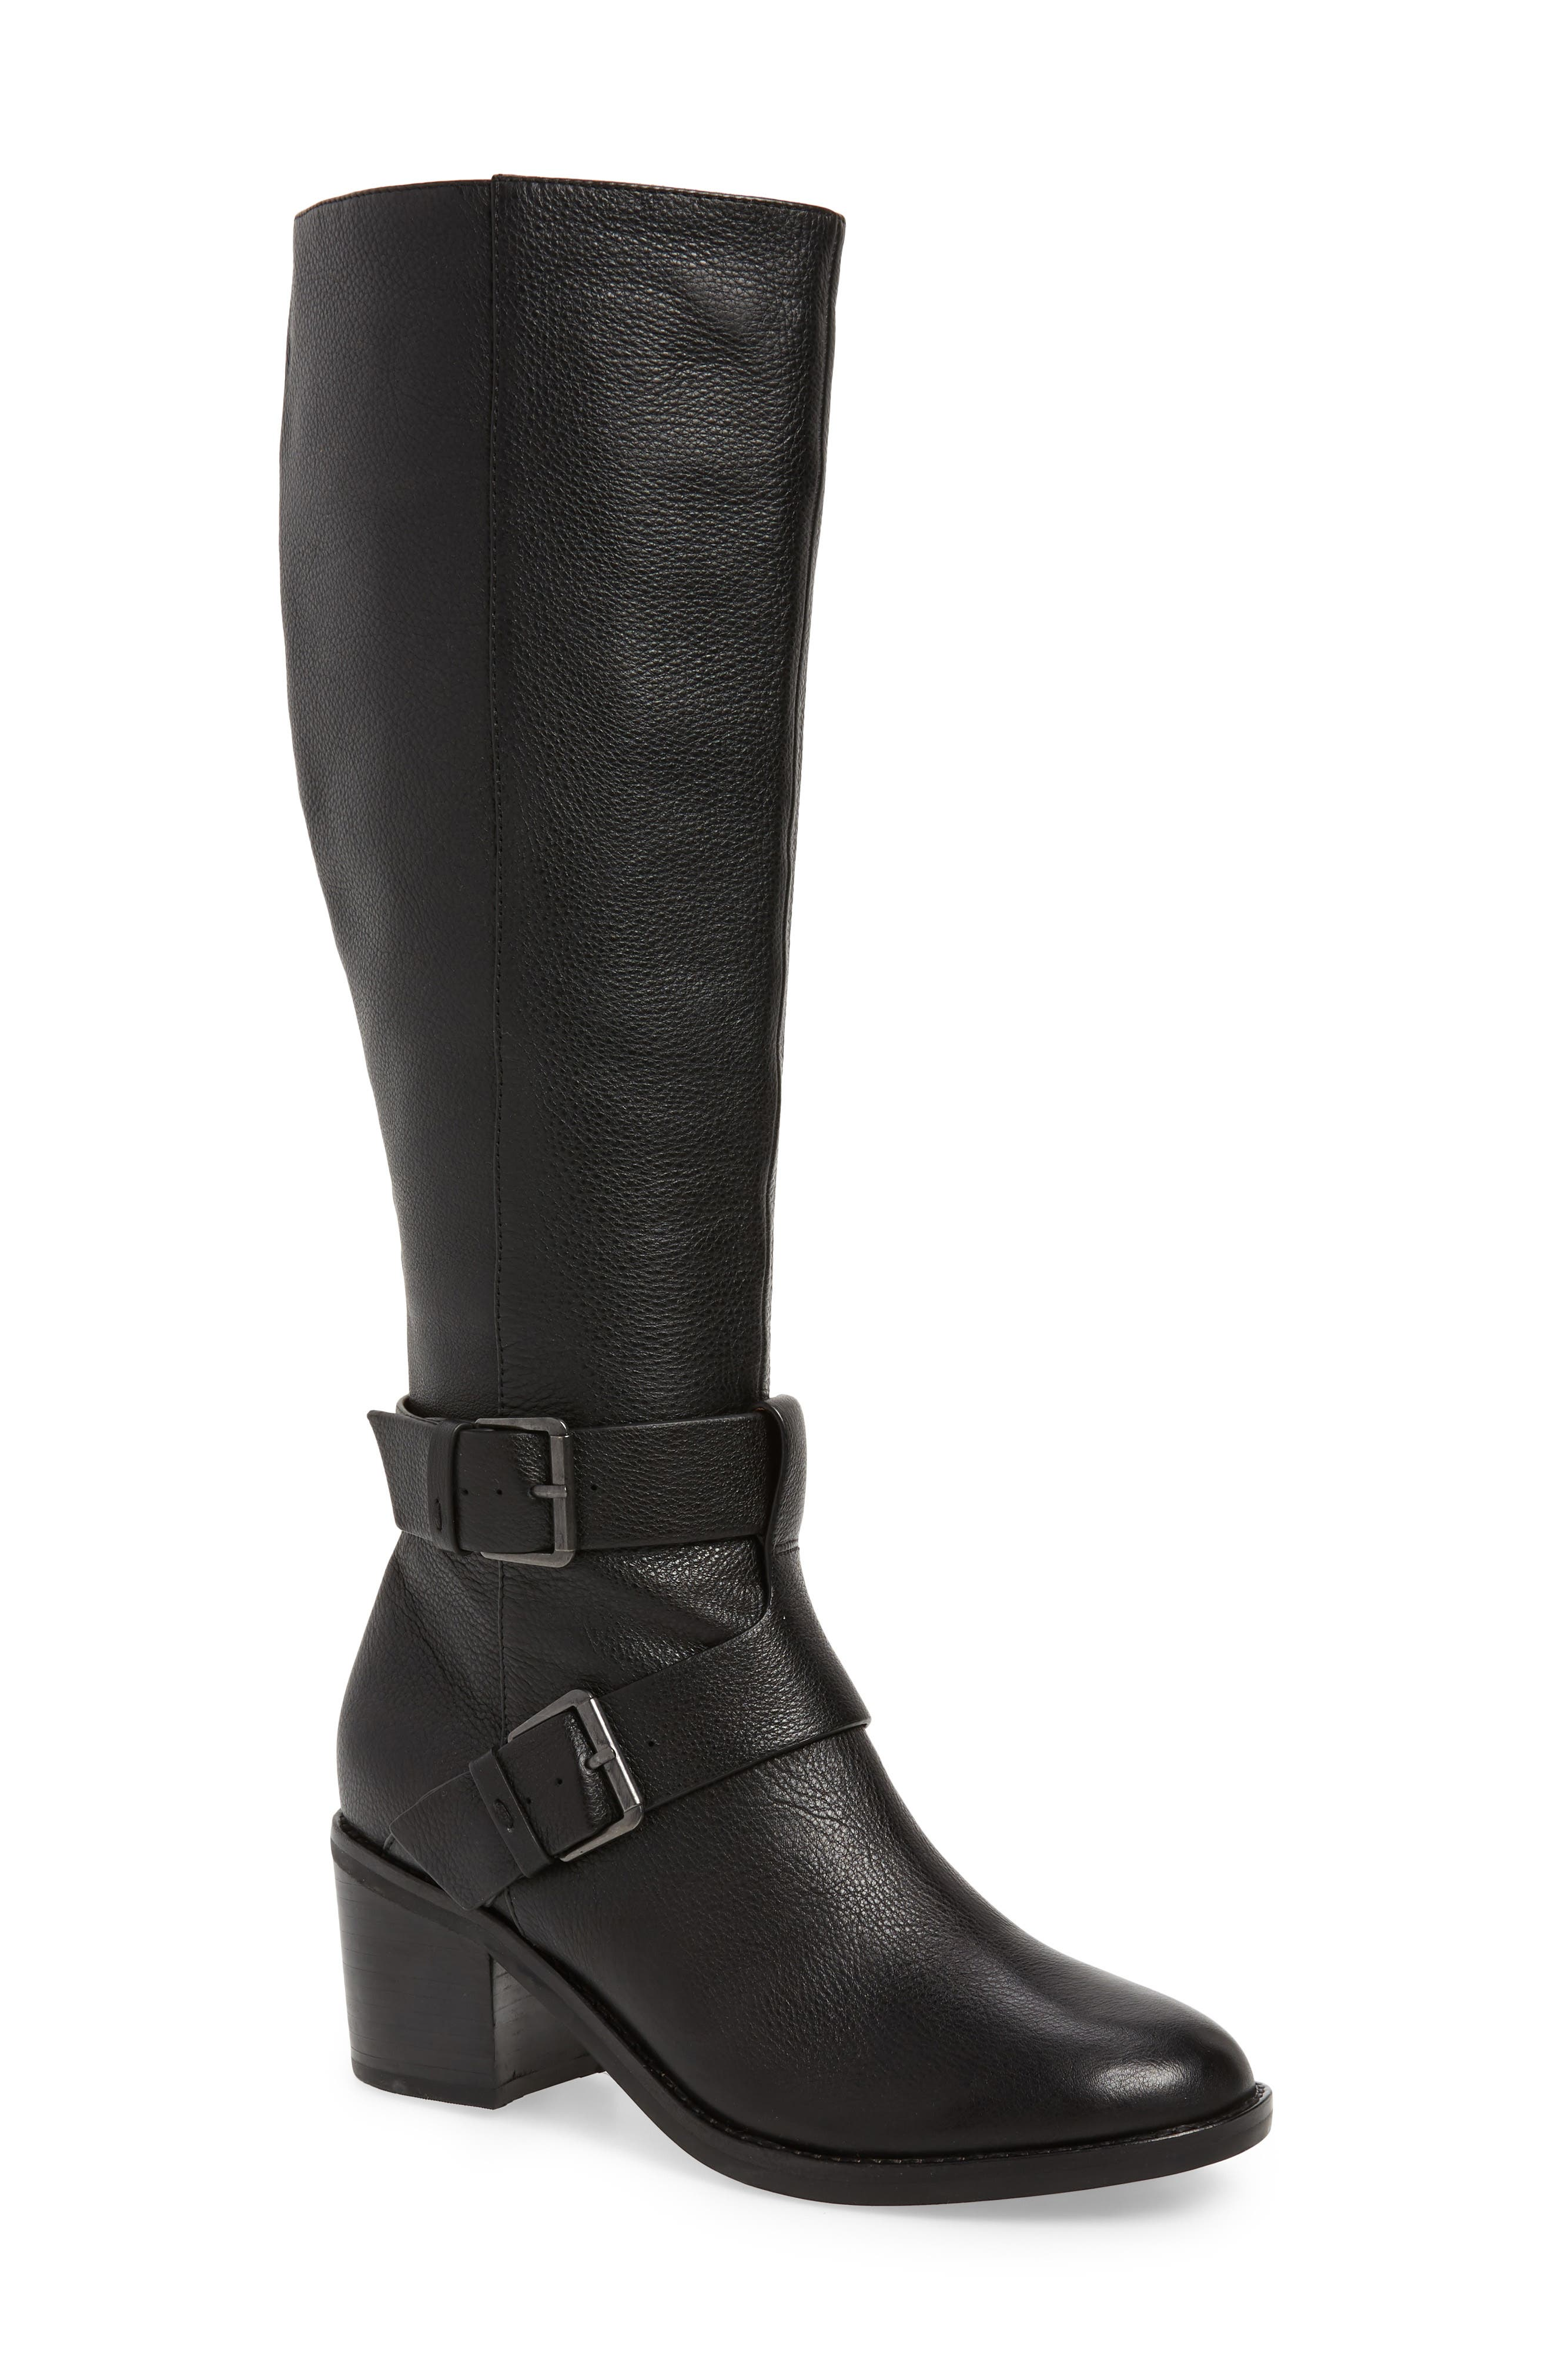 Gentle Souls By Kenneth Cole Verona Knee-High Riding Boot, Black